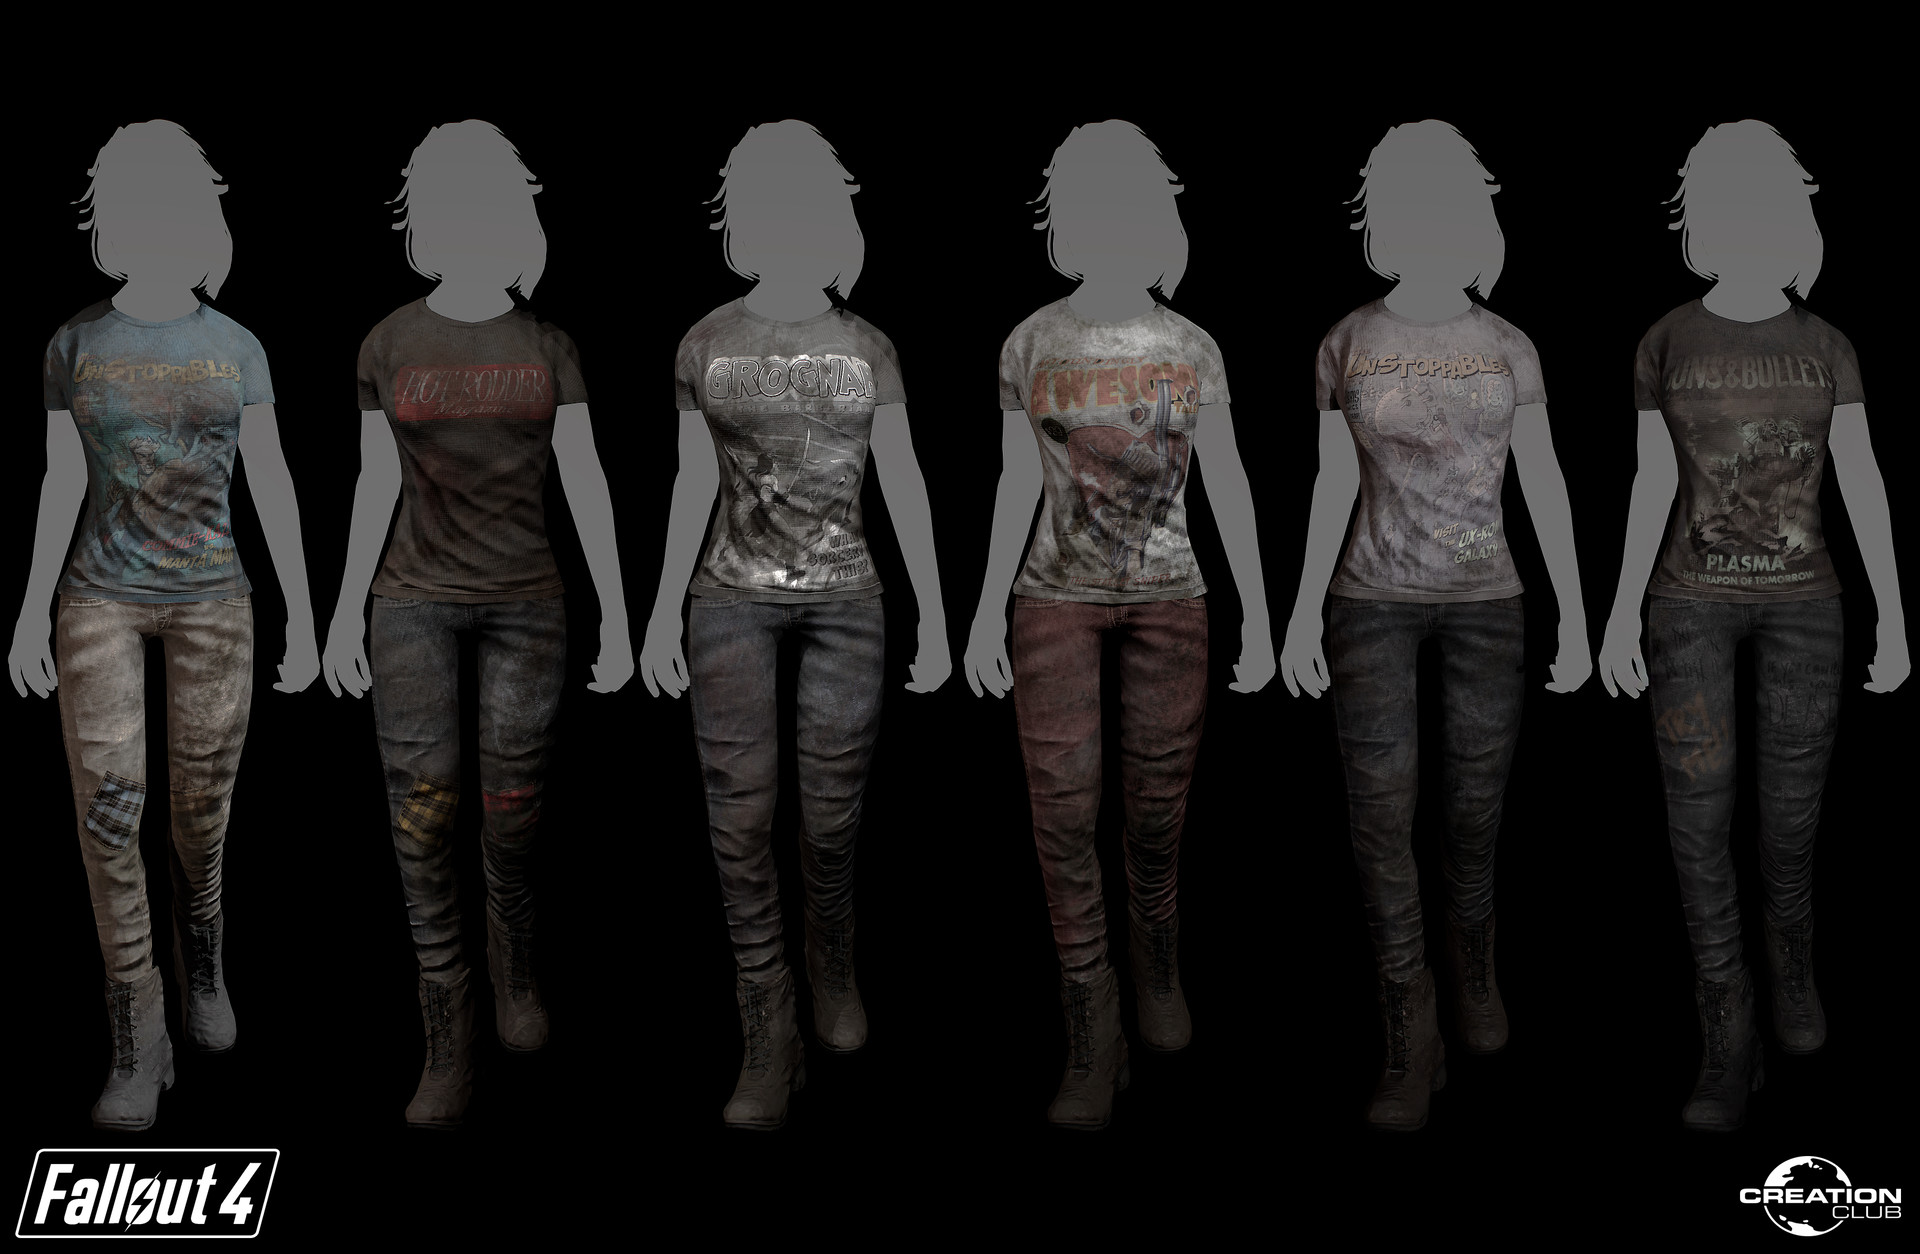 ArtStation - Graphic T-Shirt Pack - Creation Club - Fallout